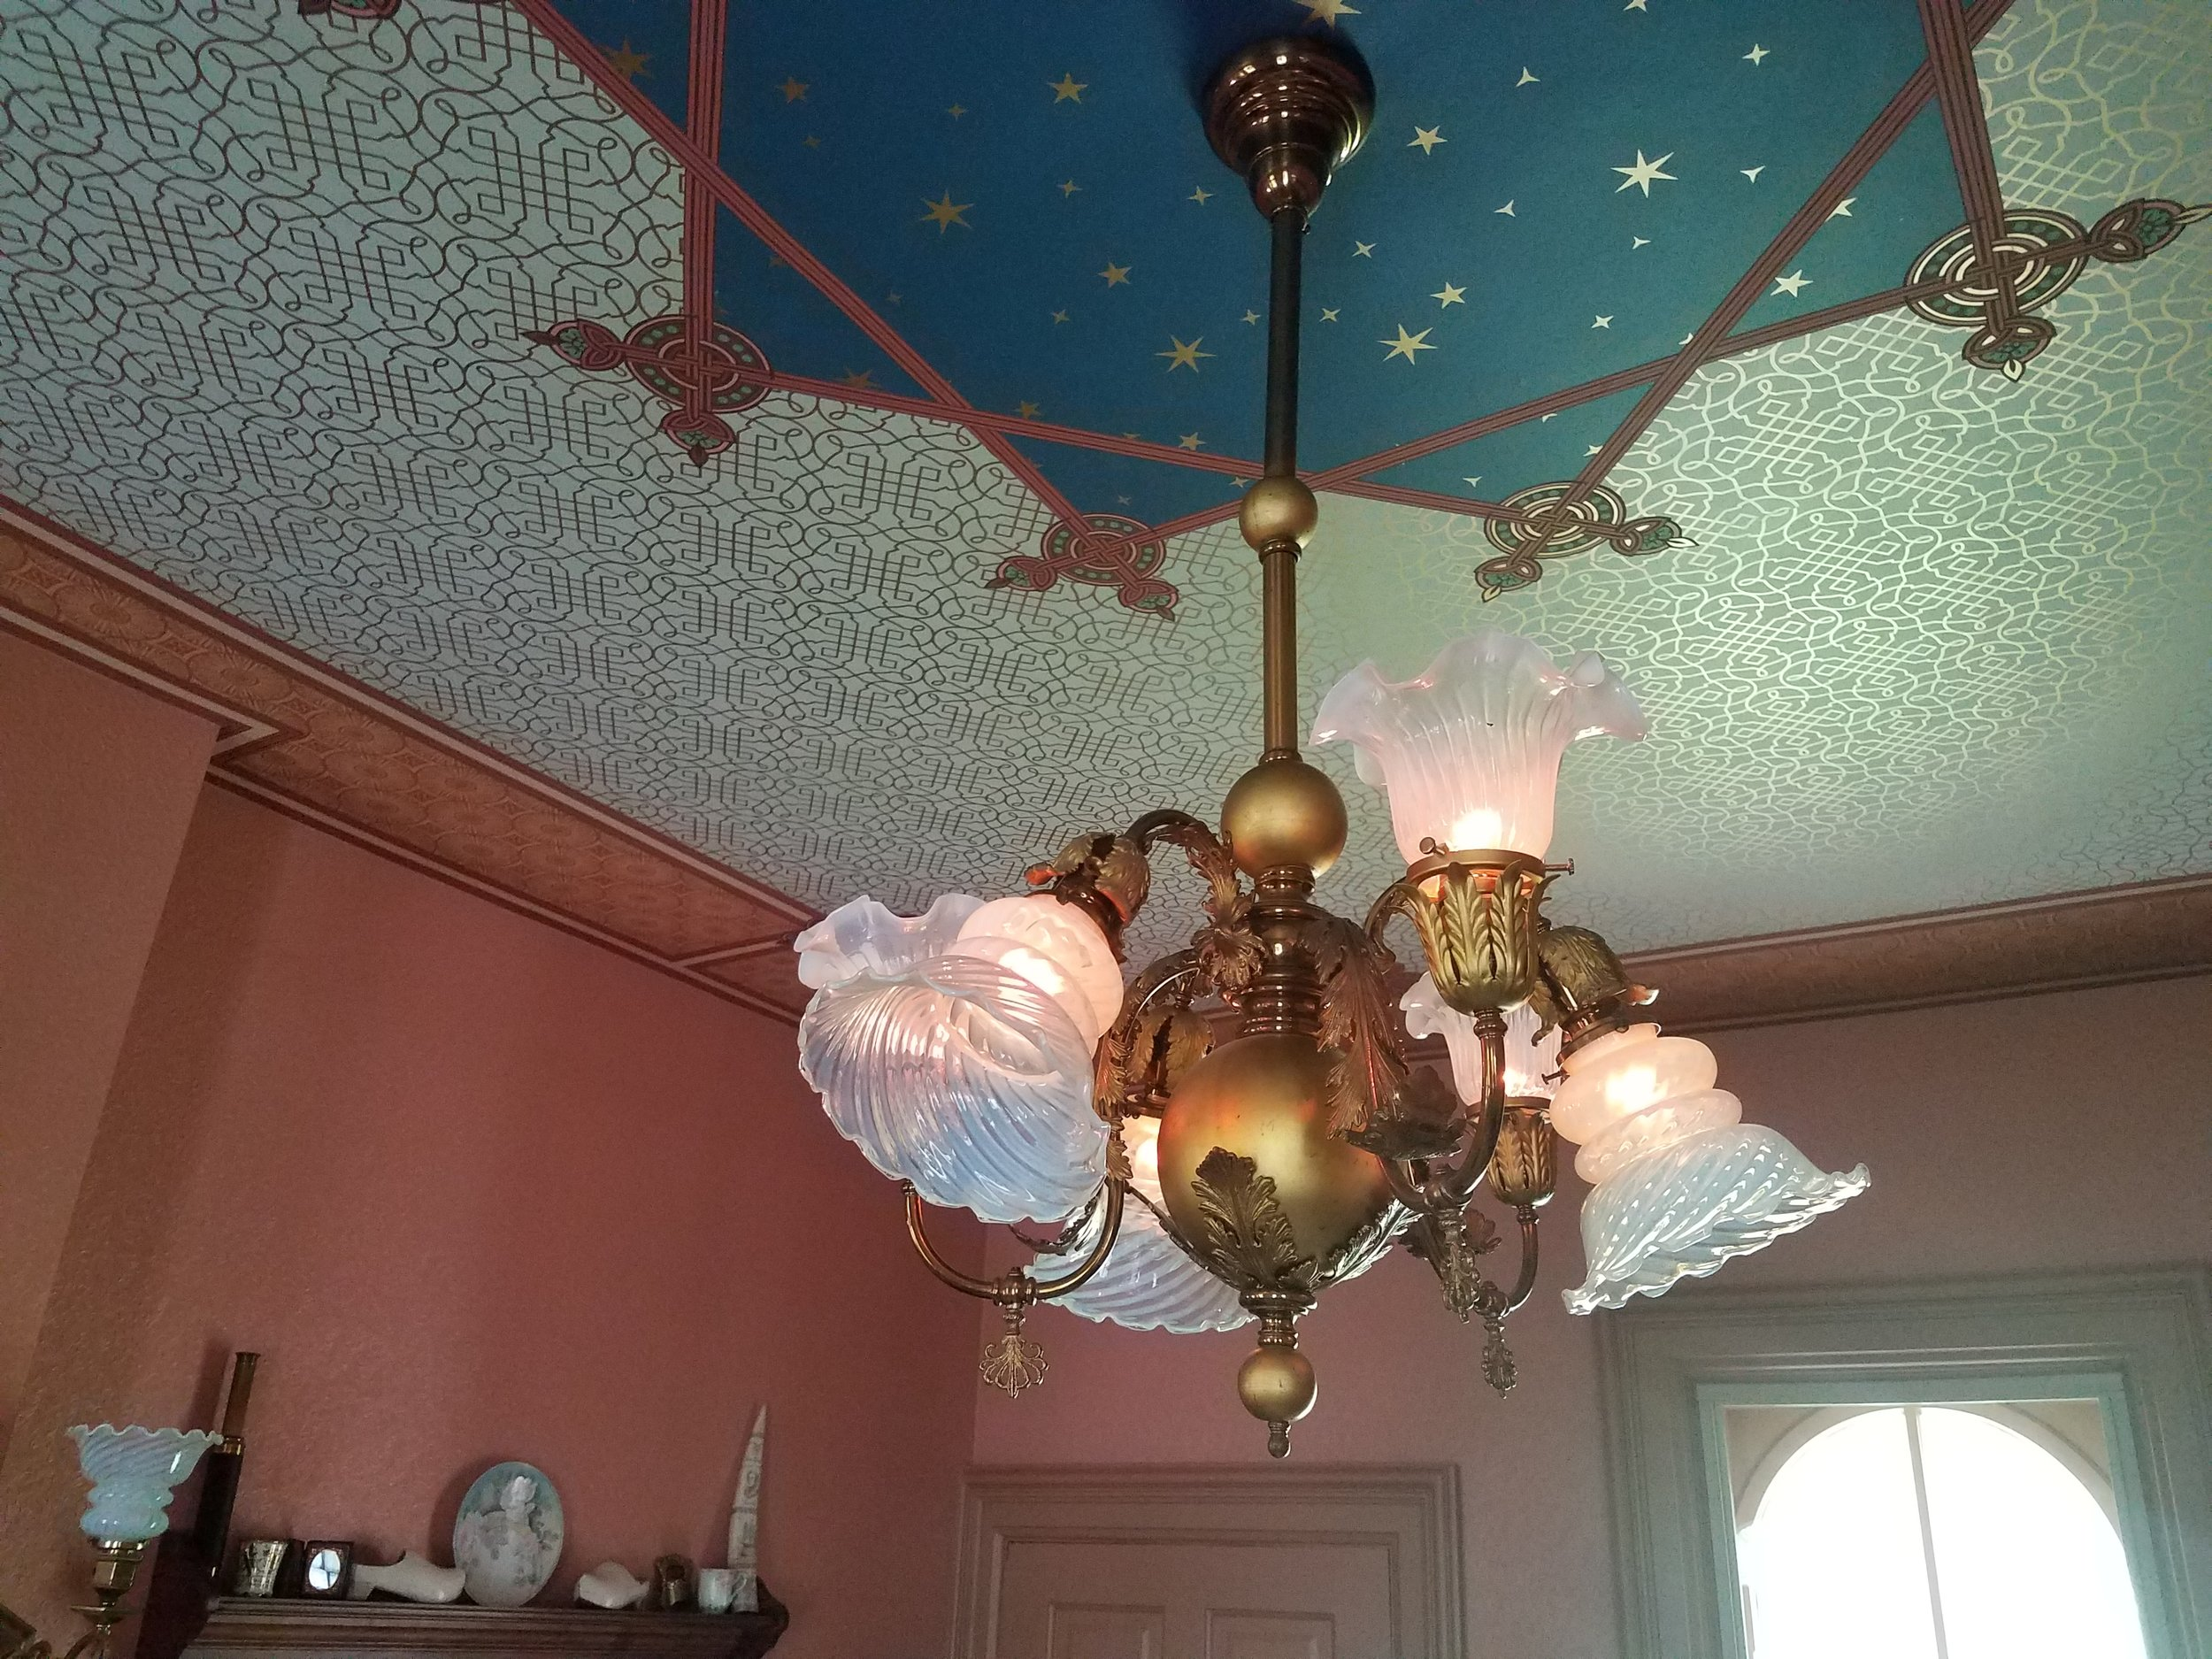 """Marti found a great deal on an antique """"Gasolier"""" chandelier that would be just perfect!  David thought it was too much money, but Marti finally wore him down, """"It's going to the crowning glory of this room!!"""" So the purchase was made! When it arrived we found that the gas part of it had not been electrified and the wiring of the electric part was sketchy. We ended up paying twice the purchase price to rewire it.... and then, of course, we needed to replace the rather plain shades with exquisite opalescent ones. What a deal! But it does look fantastic and is period perfect. When electricity first became accessible, it was terribly unreliable so the Victorians used a dual system. Shades pointing down are the original electric ones and gas was routed to the shades pointing up.  The ornate valve handle is at the bottom of the gas arms. Whew, our 41 year marriage survived a close one!"""